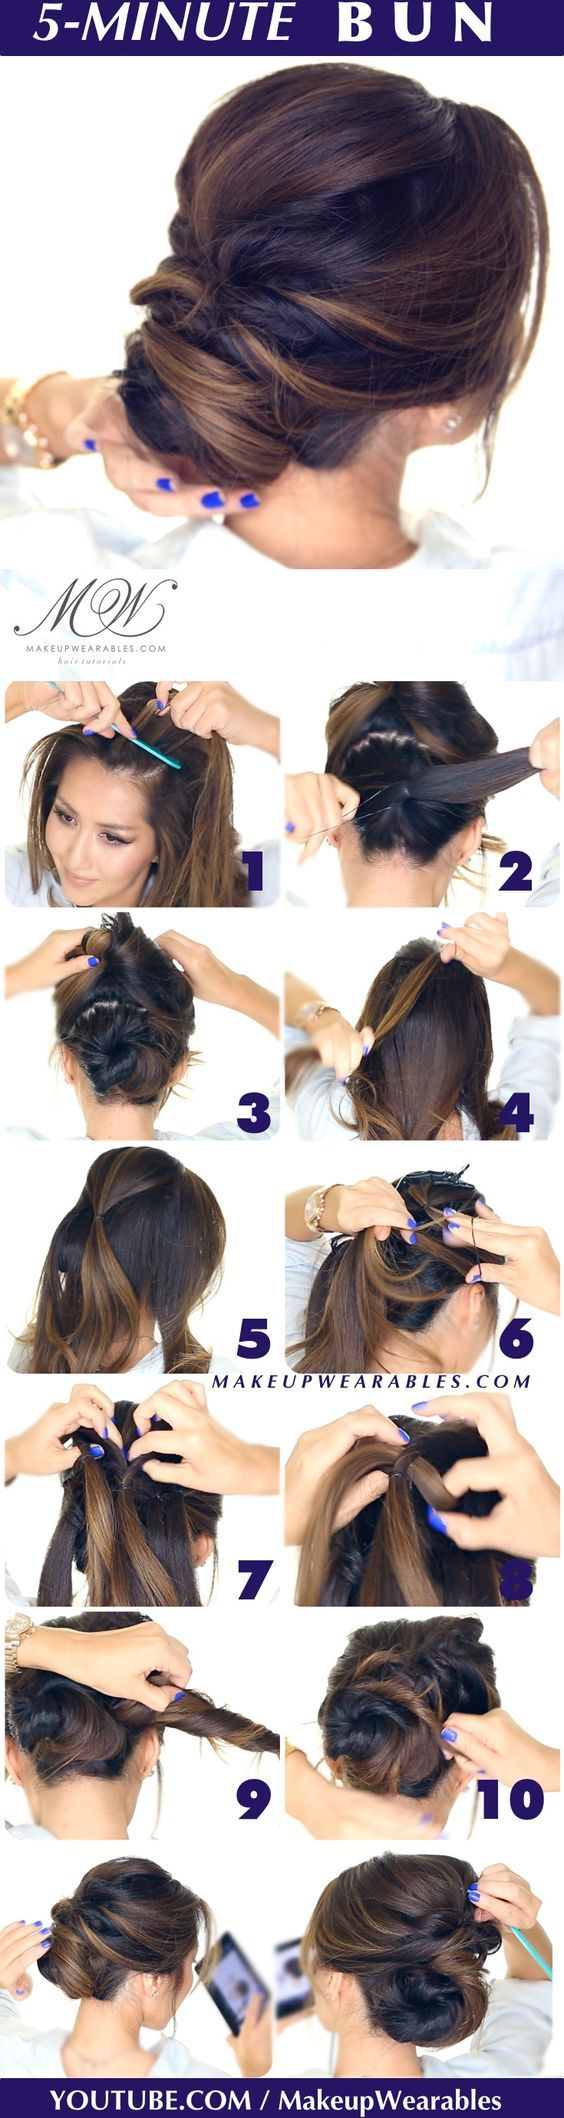 hair tutorial - easy romantic bun hairstyle - Elegant twisted bun